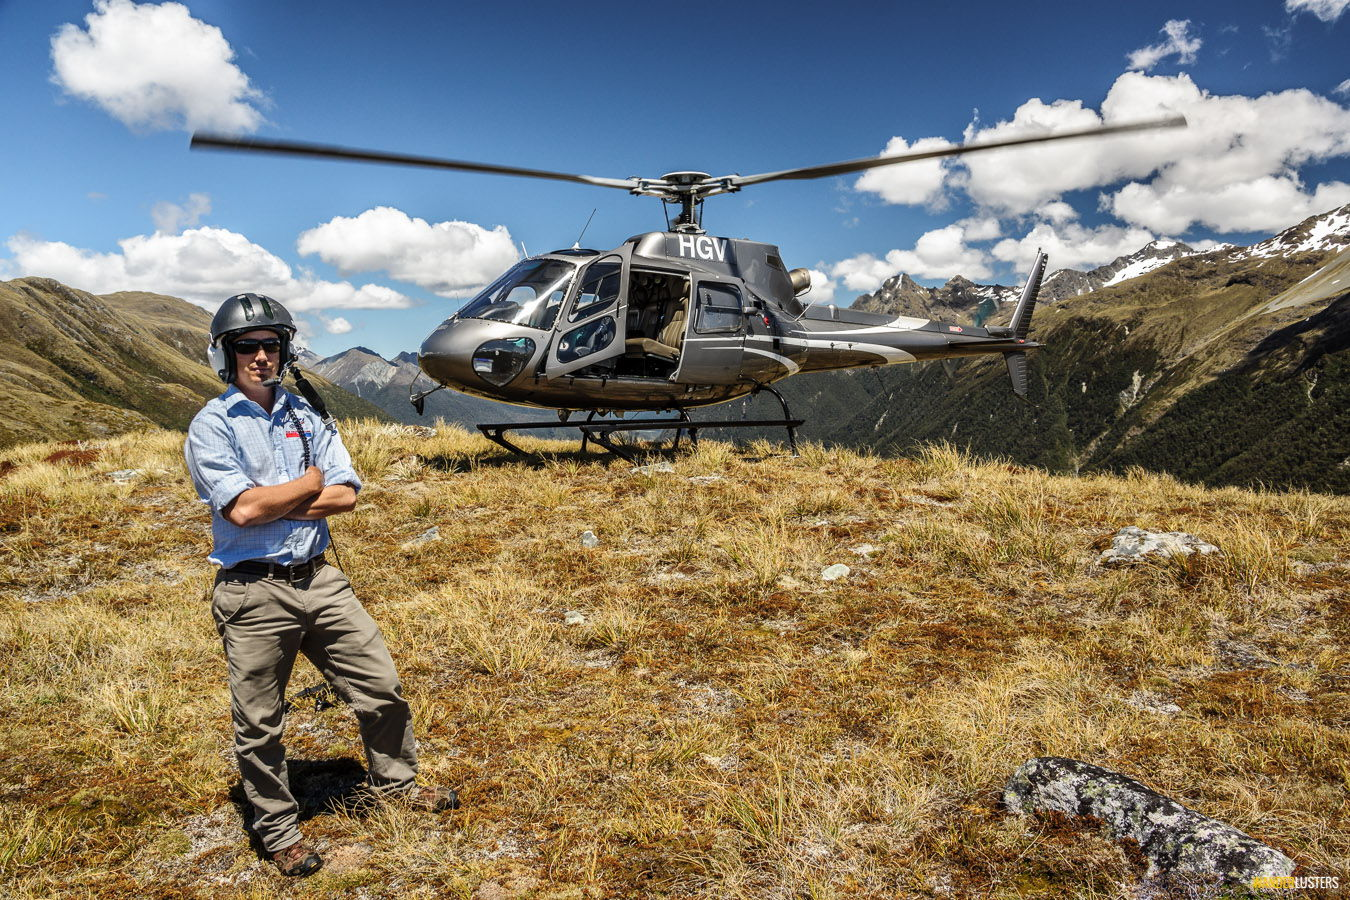 alpine escape helicopter-line-queenstown-divide-pilot